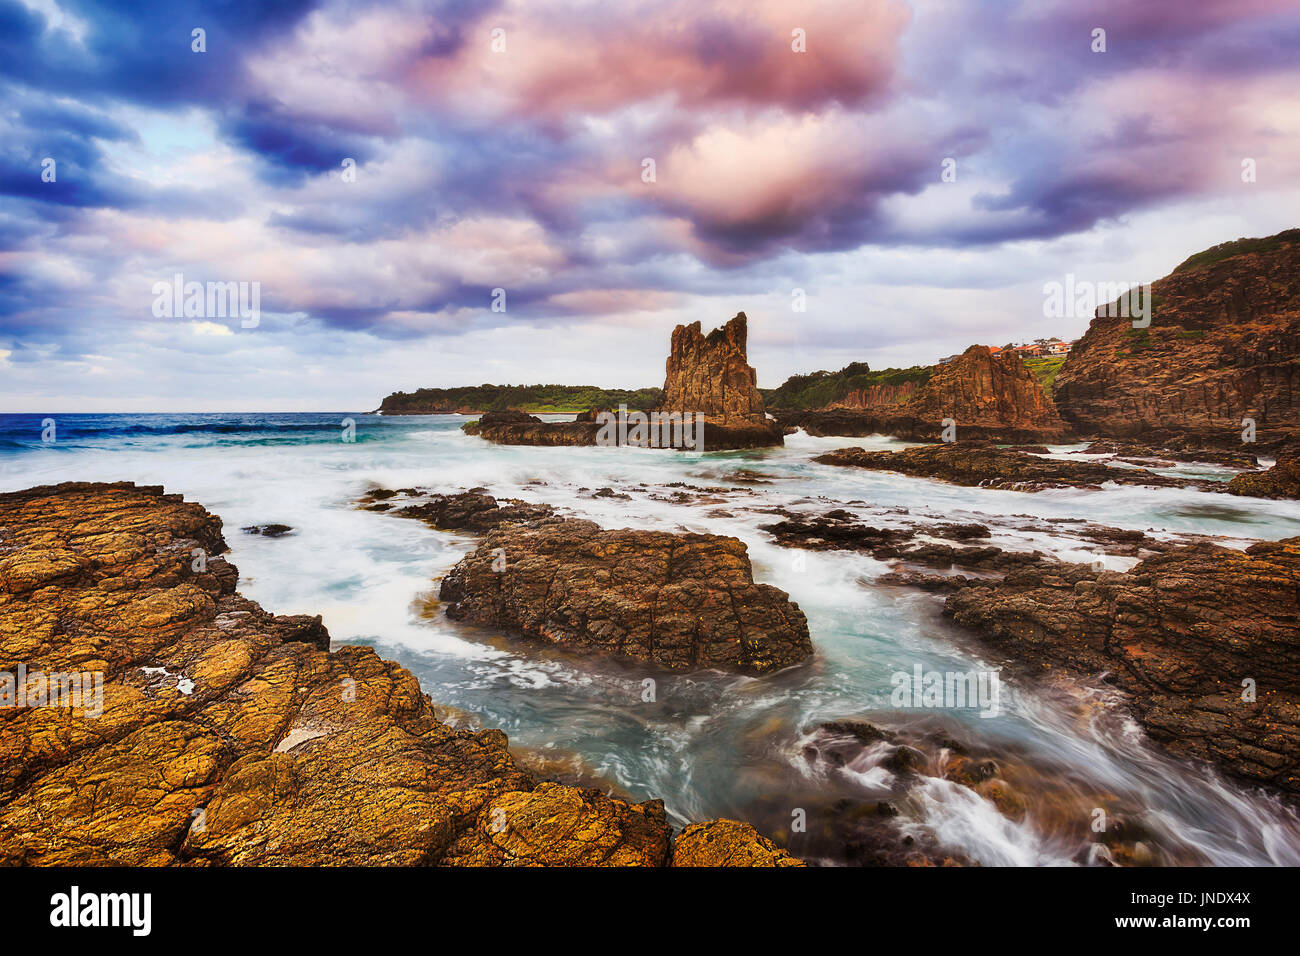 Rugged rocky coast around bombo beach in Kiama town on Australian Pacific shore. Blurred surf flows ashore eroding - Stock Image